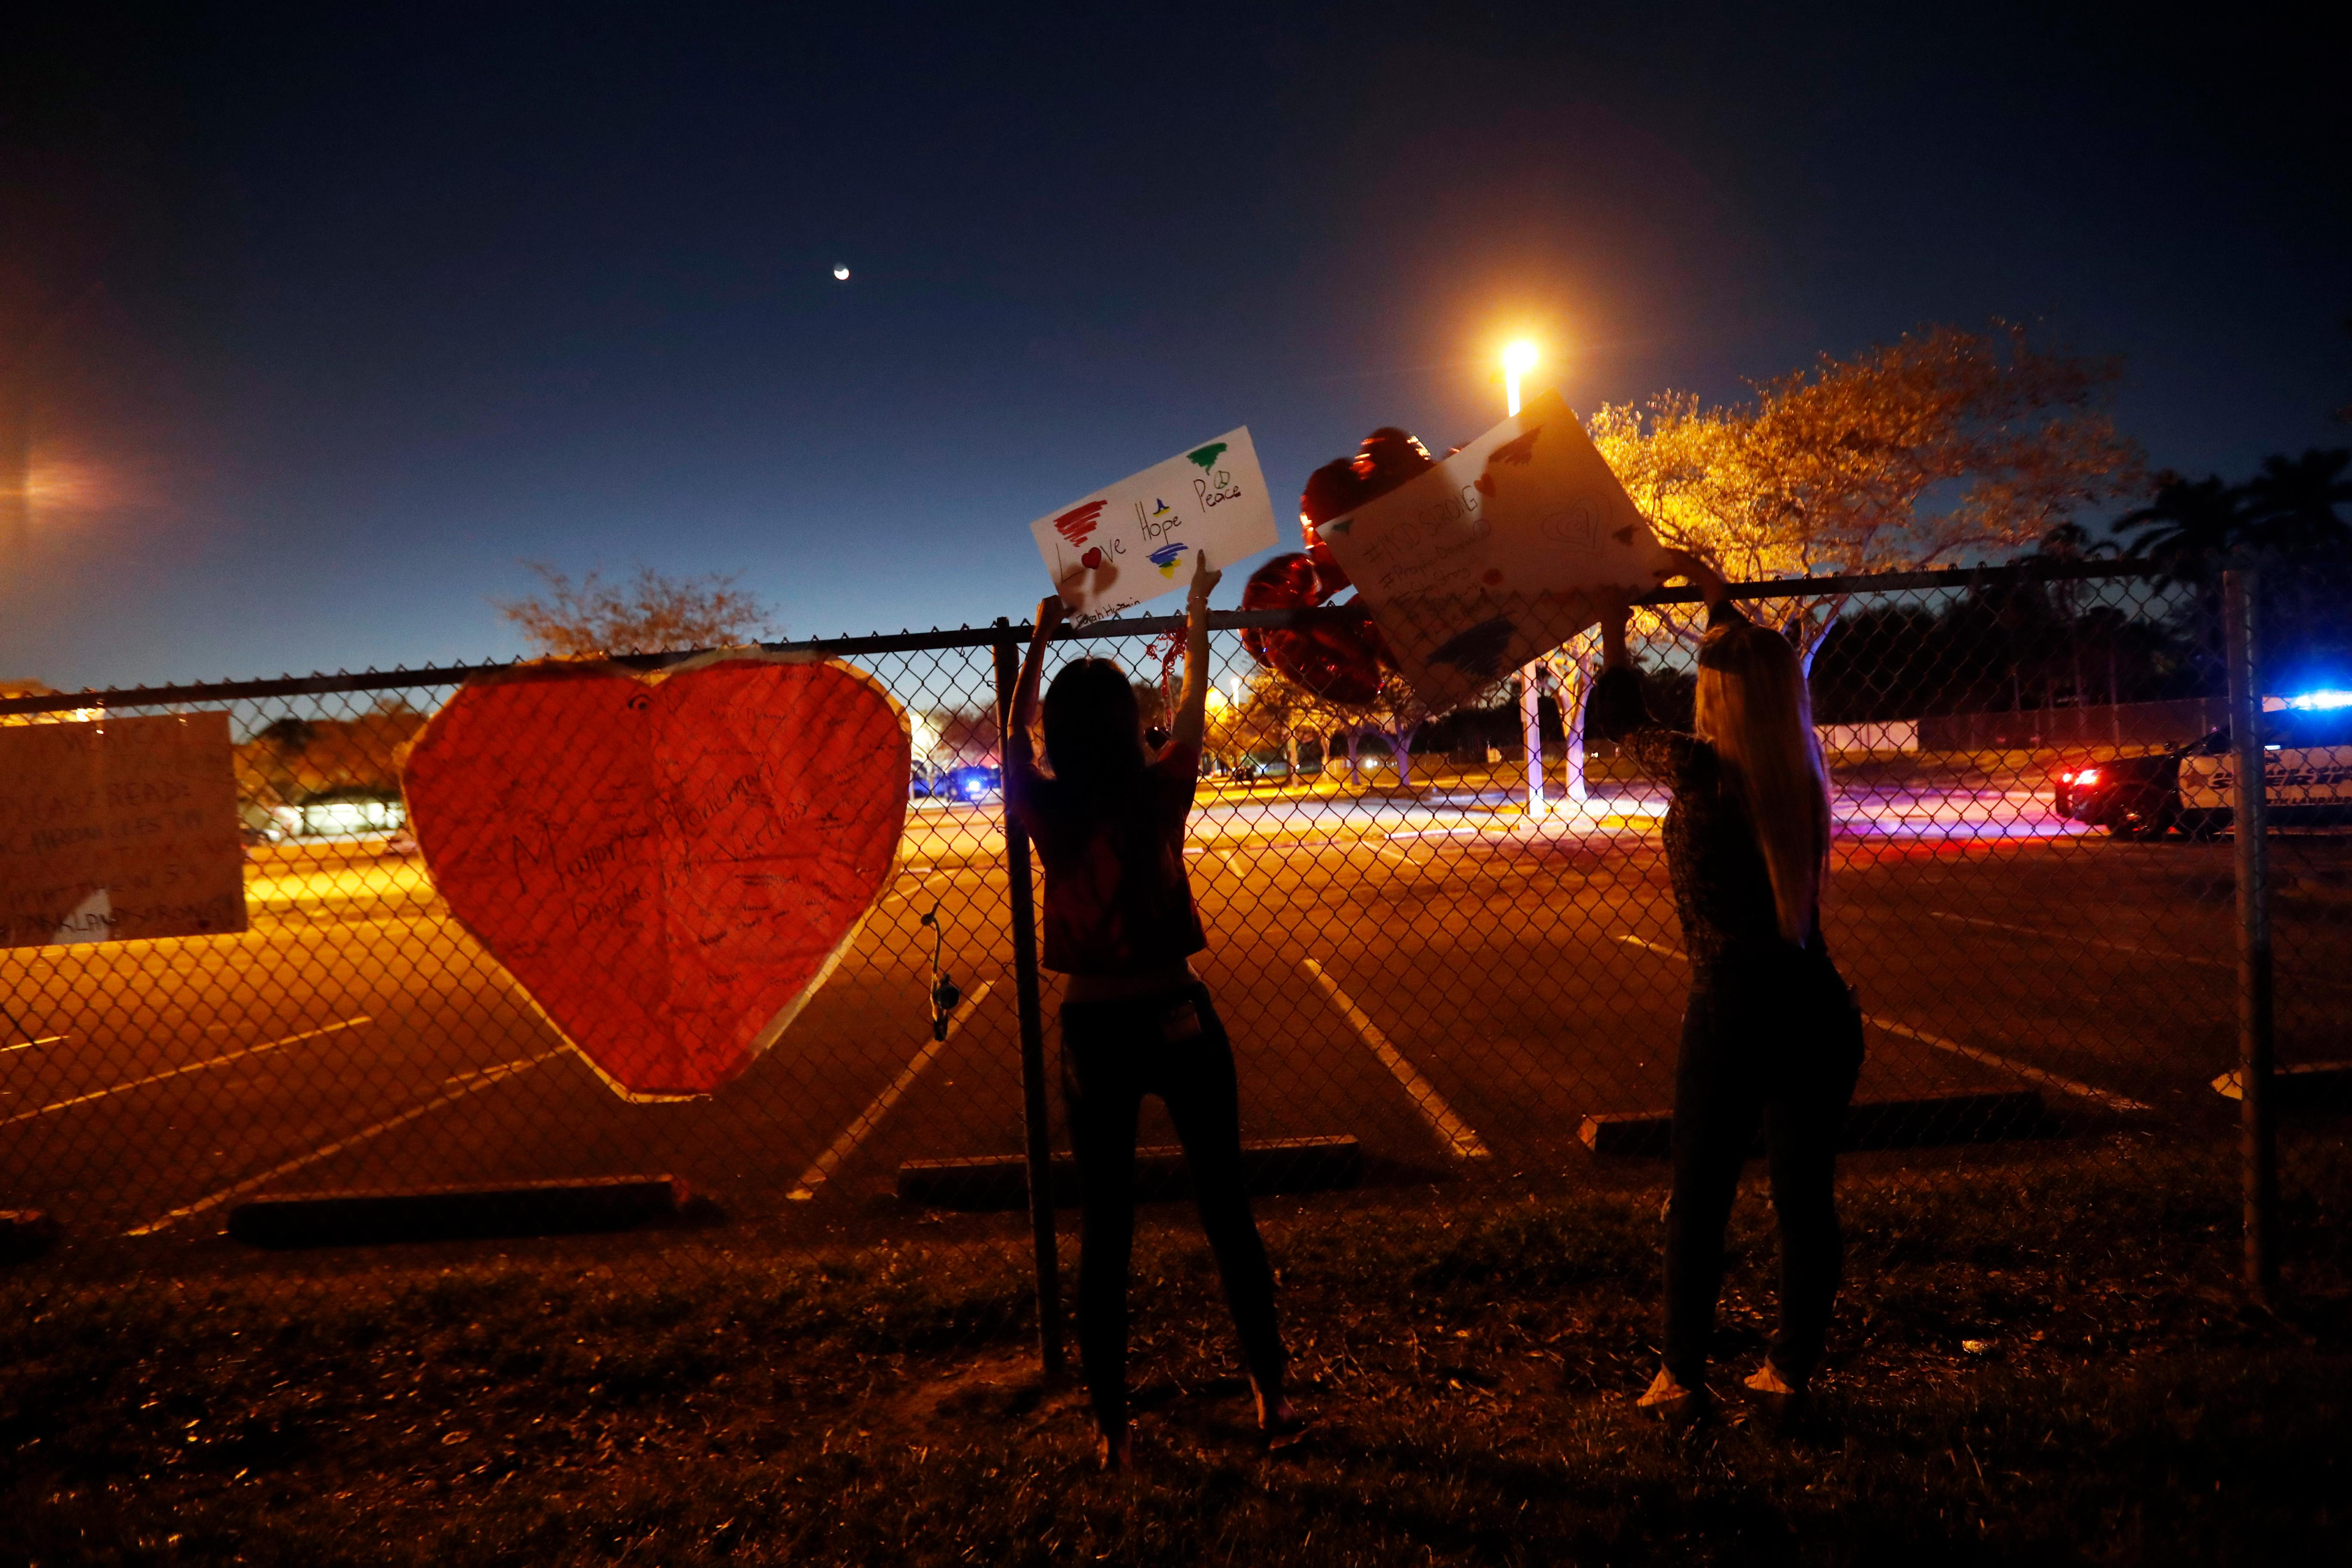 Nyla Hussain, 16, a student at Marjory Stoneman Douglas High School, hangs signs on the fence of the school with her mother Heather Hussain, right, in Parkland, Fla., Sunday, Feb. 18, 2018. Nikolas Cruz, a former student, carried out a mass shooting, killing 17 students and faculty on Wednesday, and was charged with 17 counts of premeditated murder on Thursday. (AP Photo/Gerald Herbert)